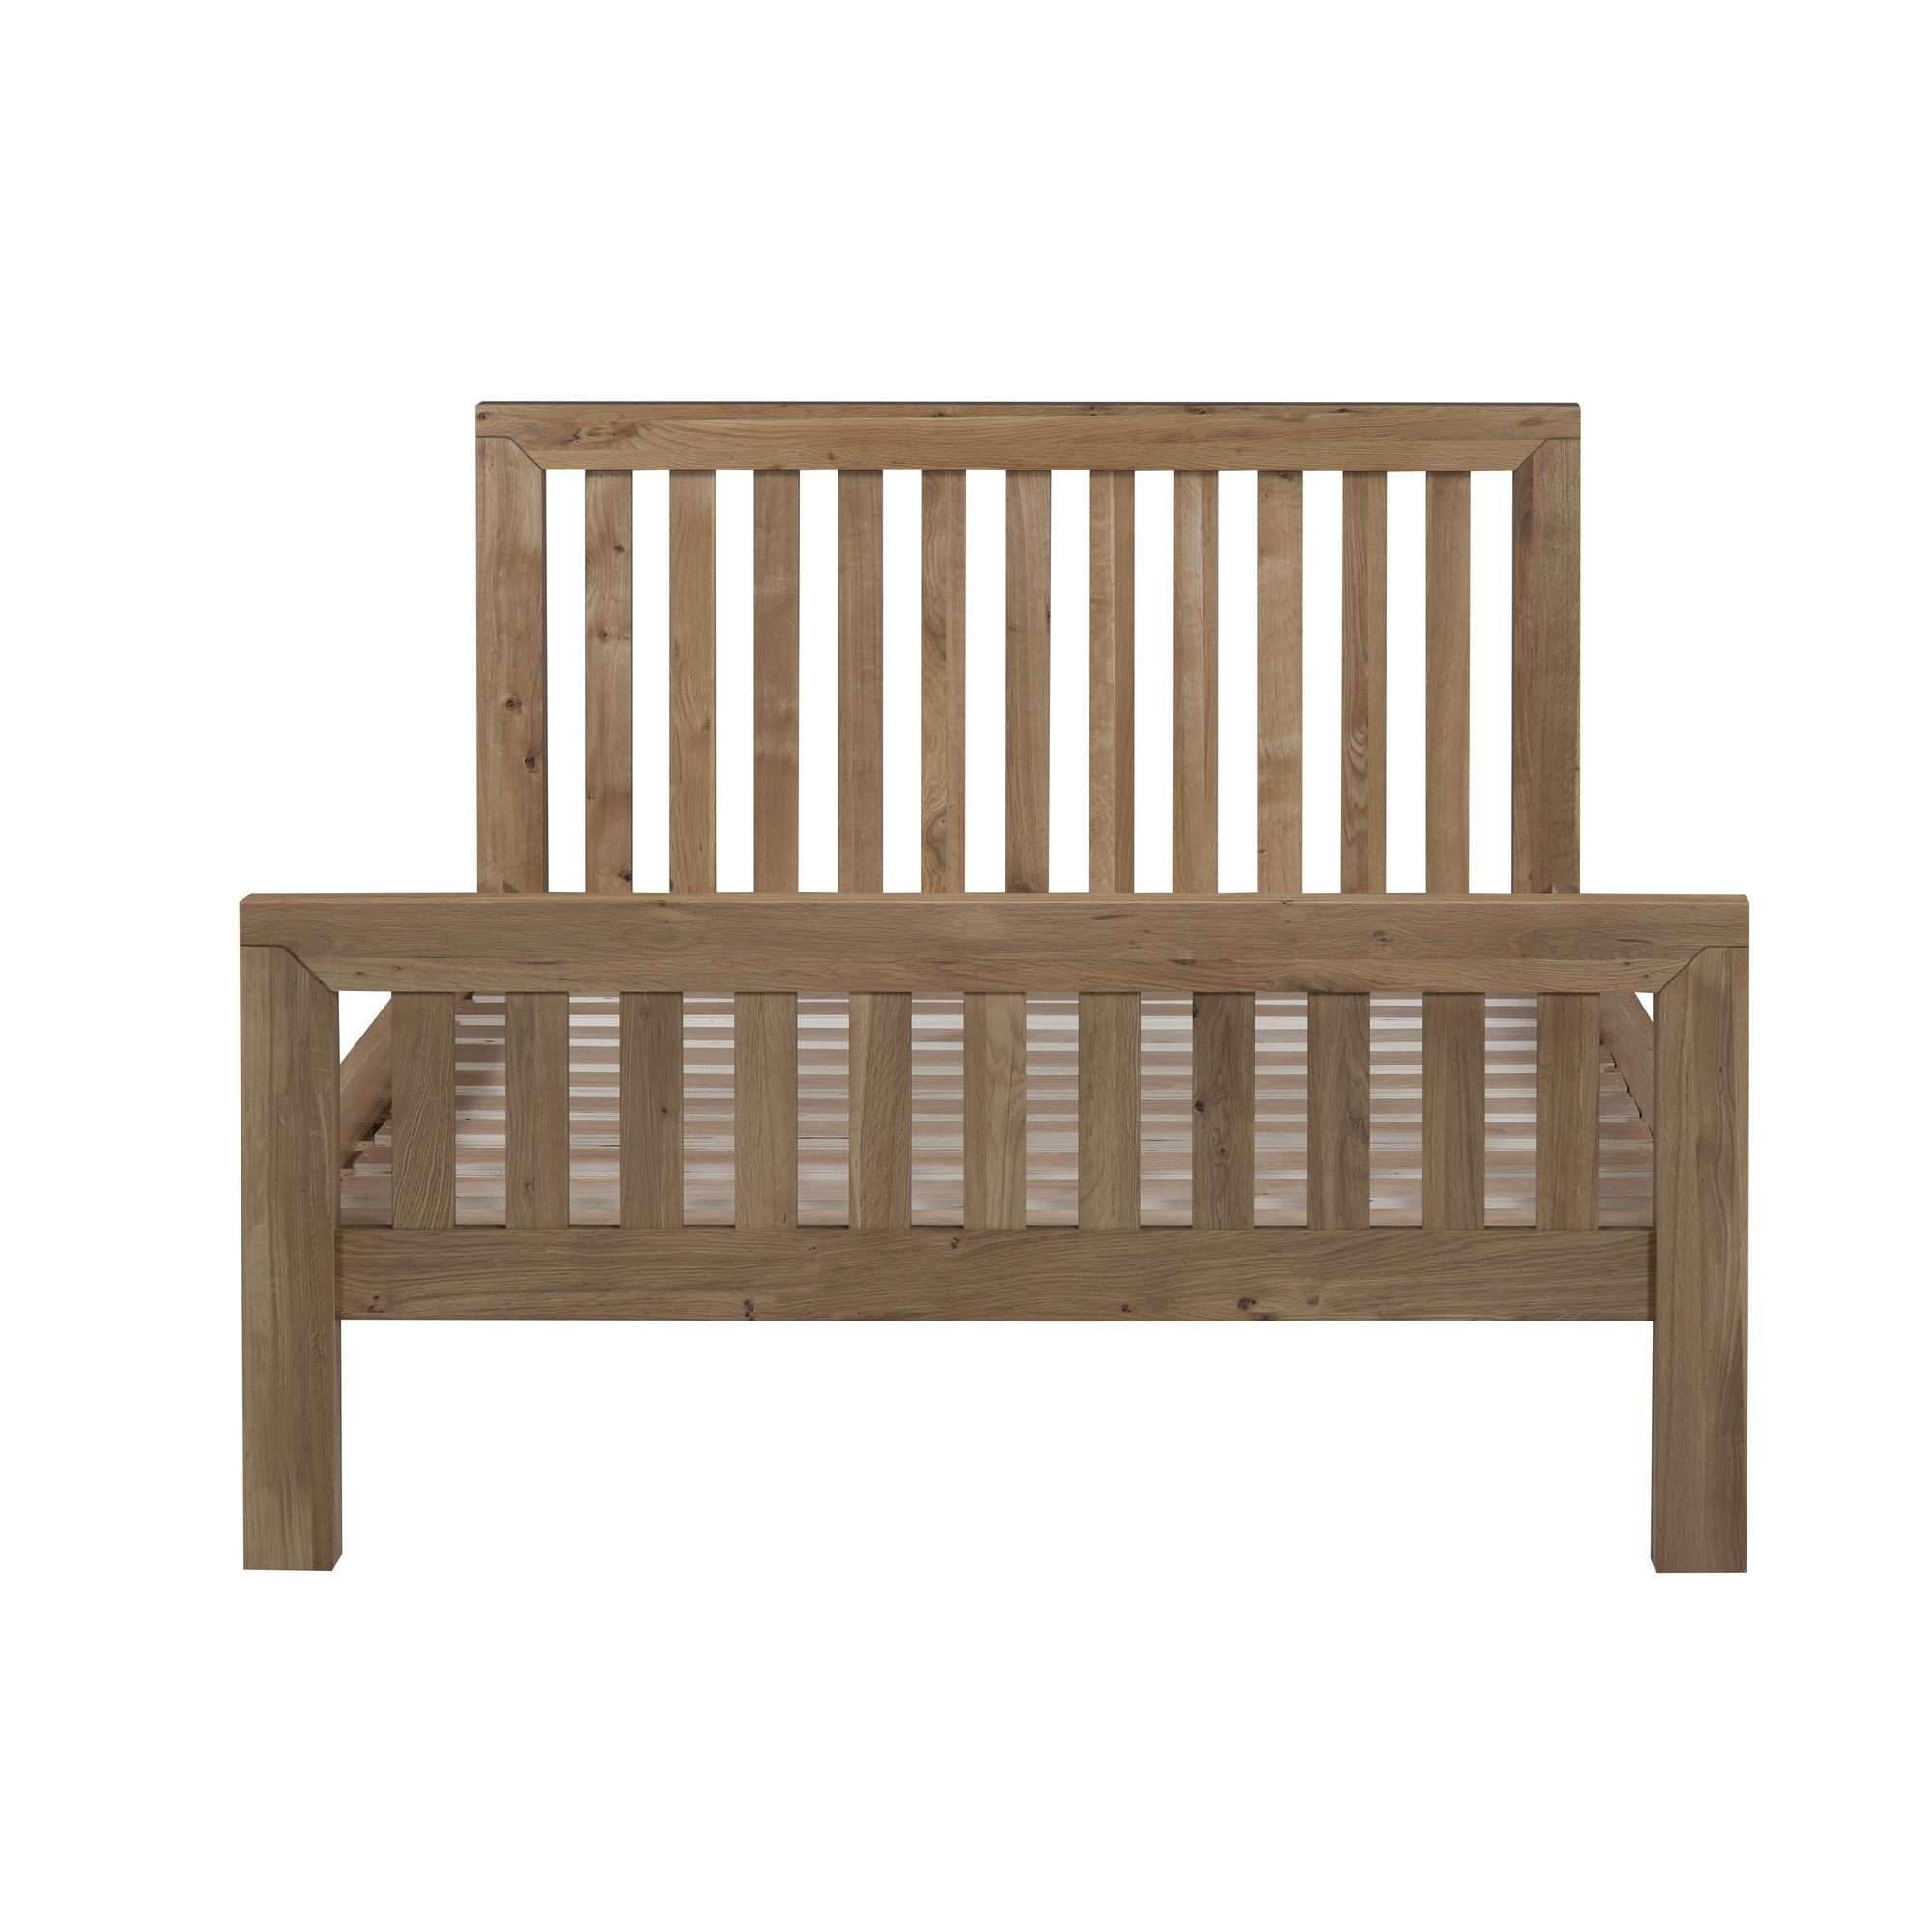 Alterton Furniture Wiltshire Bed Frame - King Size at Tesco Direct